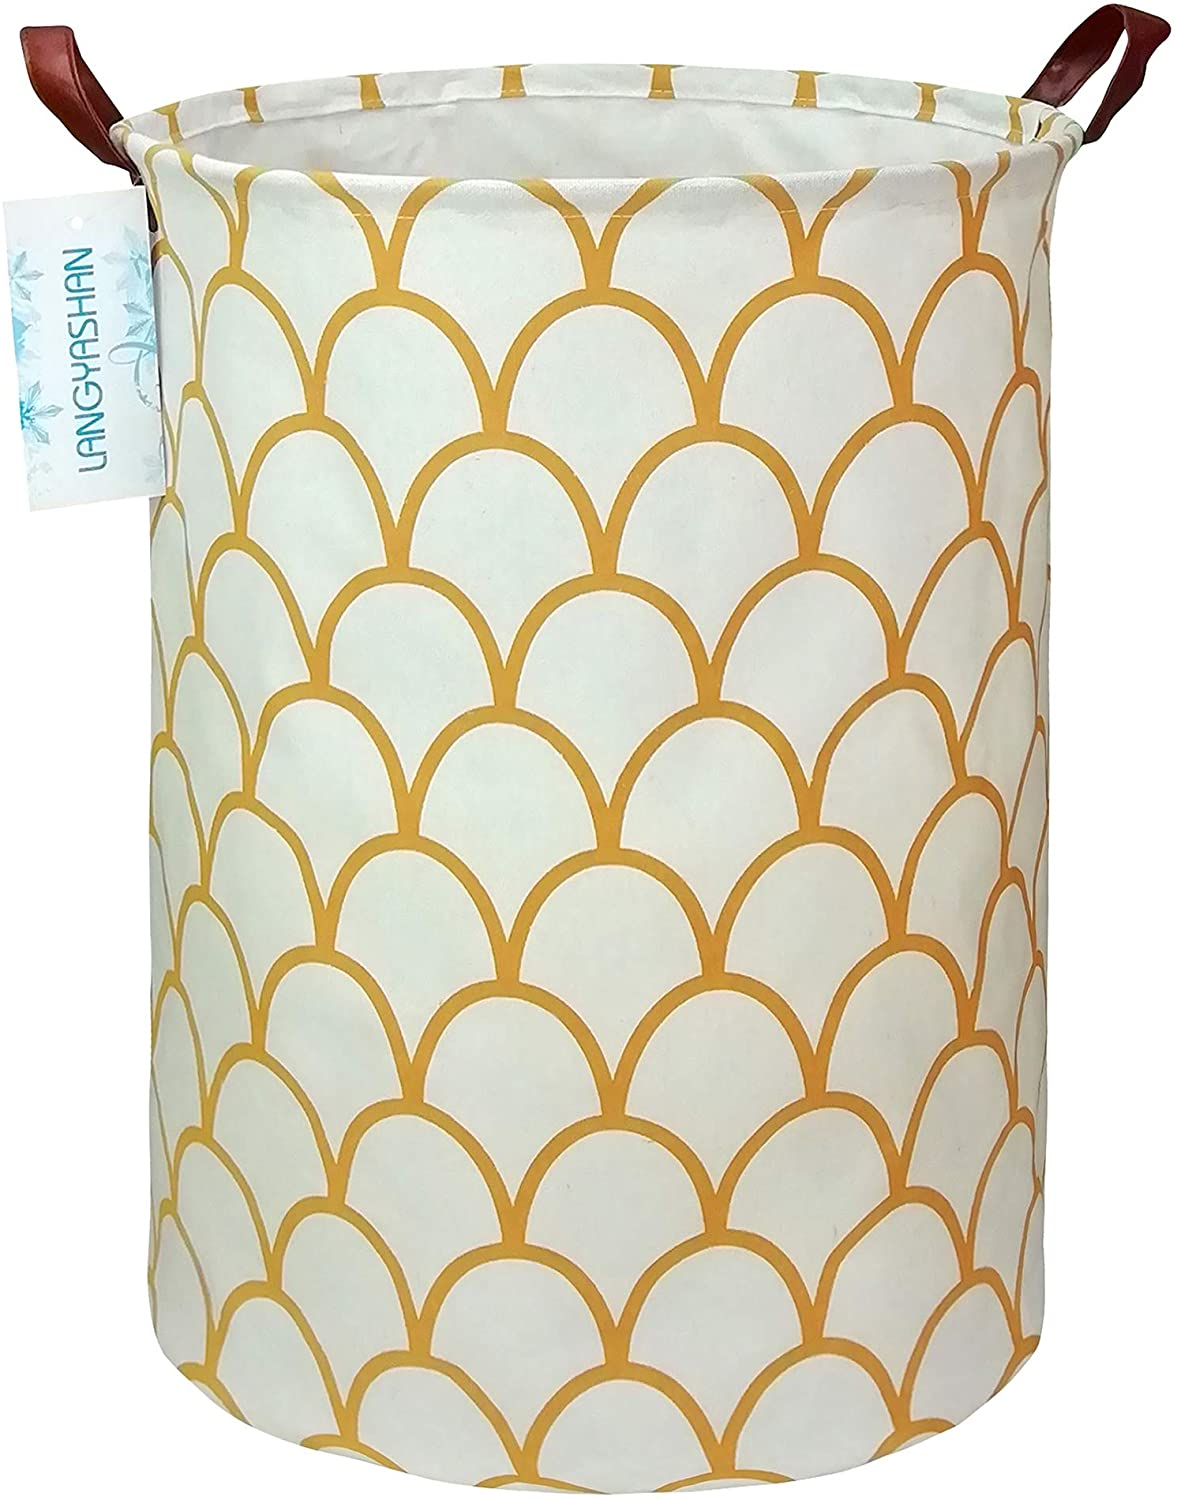 LANGYASHAN Storage Bin,Canvas Fabric Collapsible Organizer Basket for Laundry Hamper,Toy Bins,Gift Baskets, Bedroom, Clothes,Baby Nursery (Gold Egg)